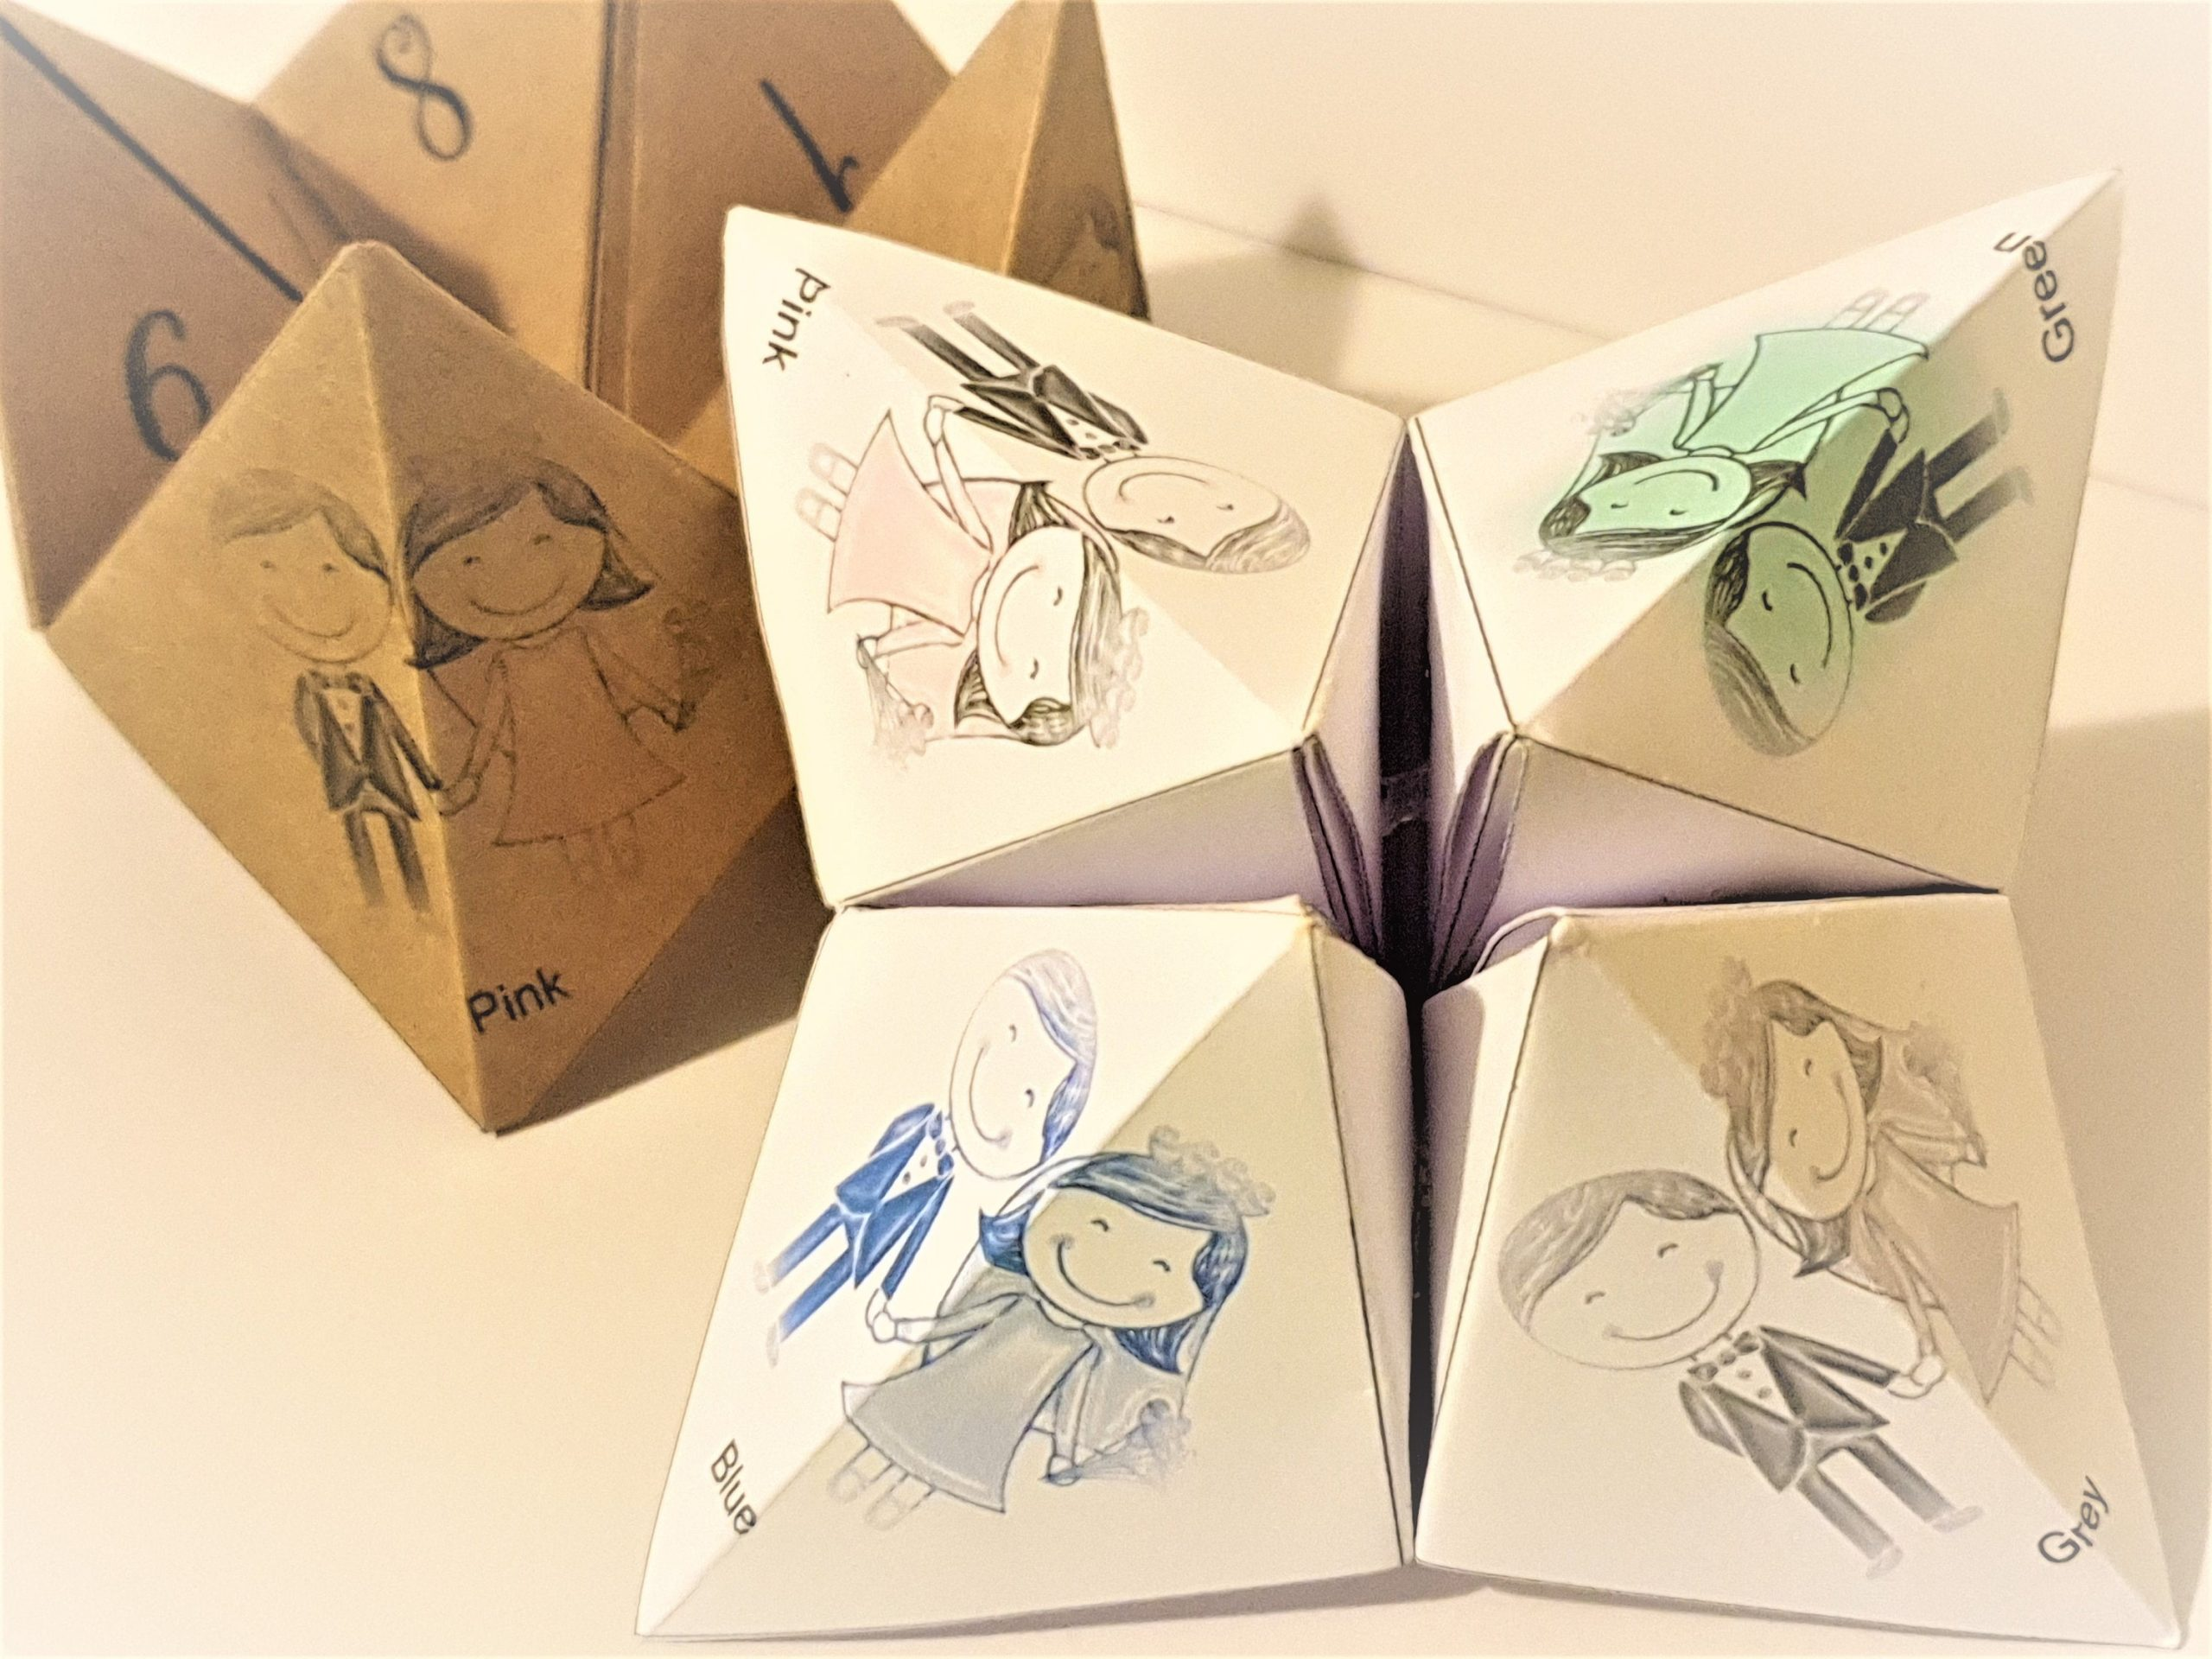 Childrens Wedding Origami Game: Children's Wedding Favours - Big Ideas For Your Little Guests